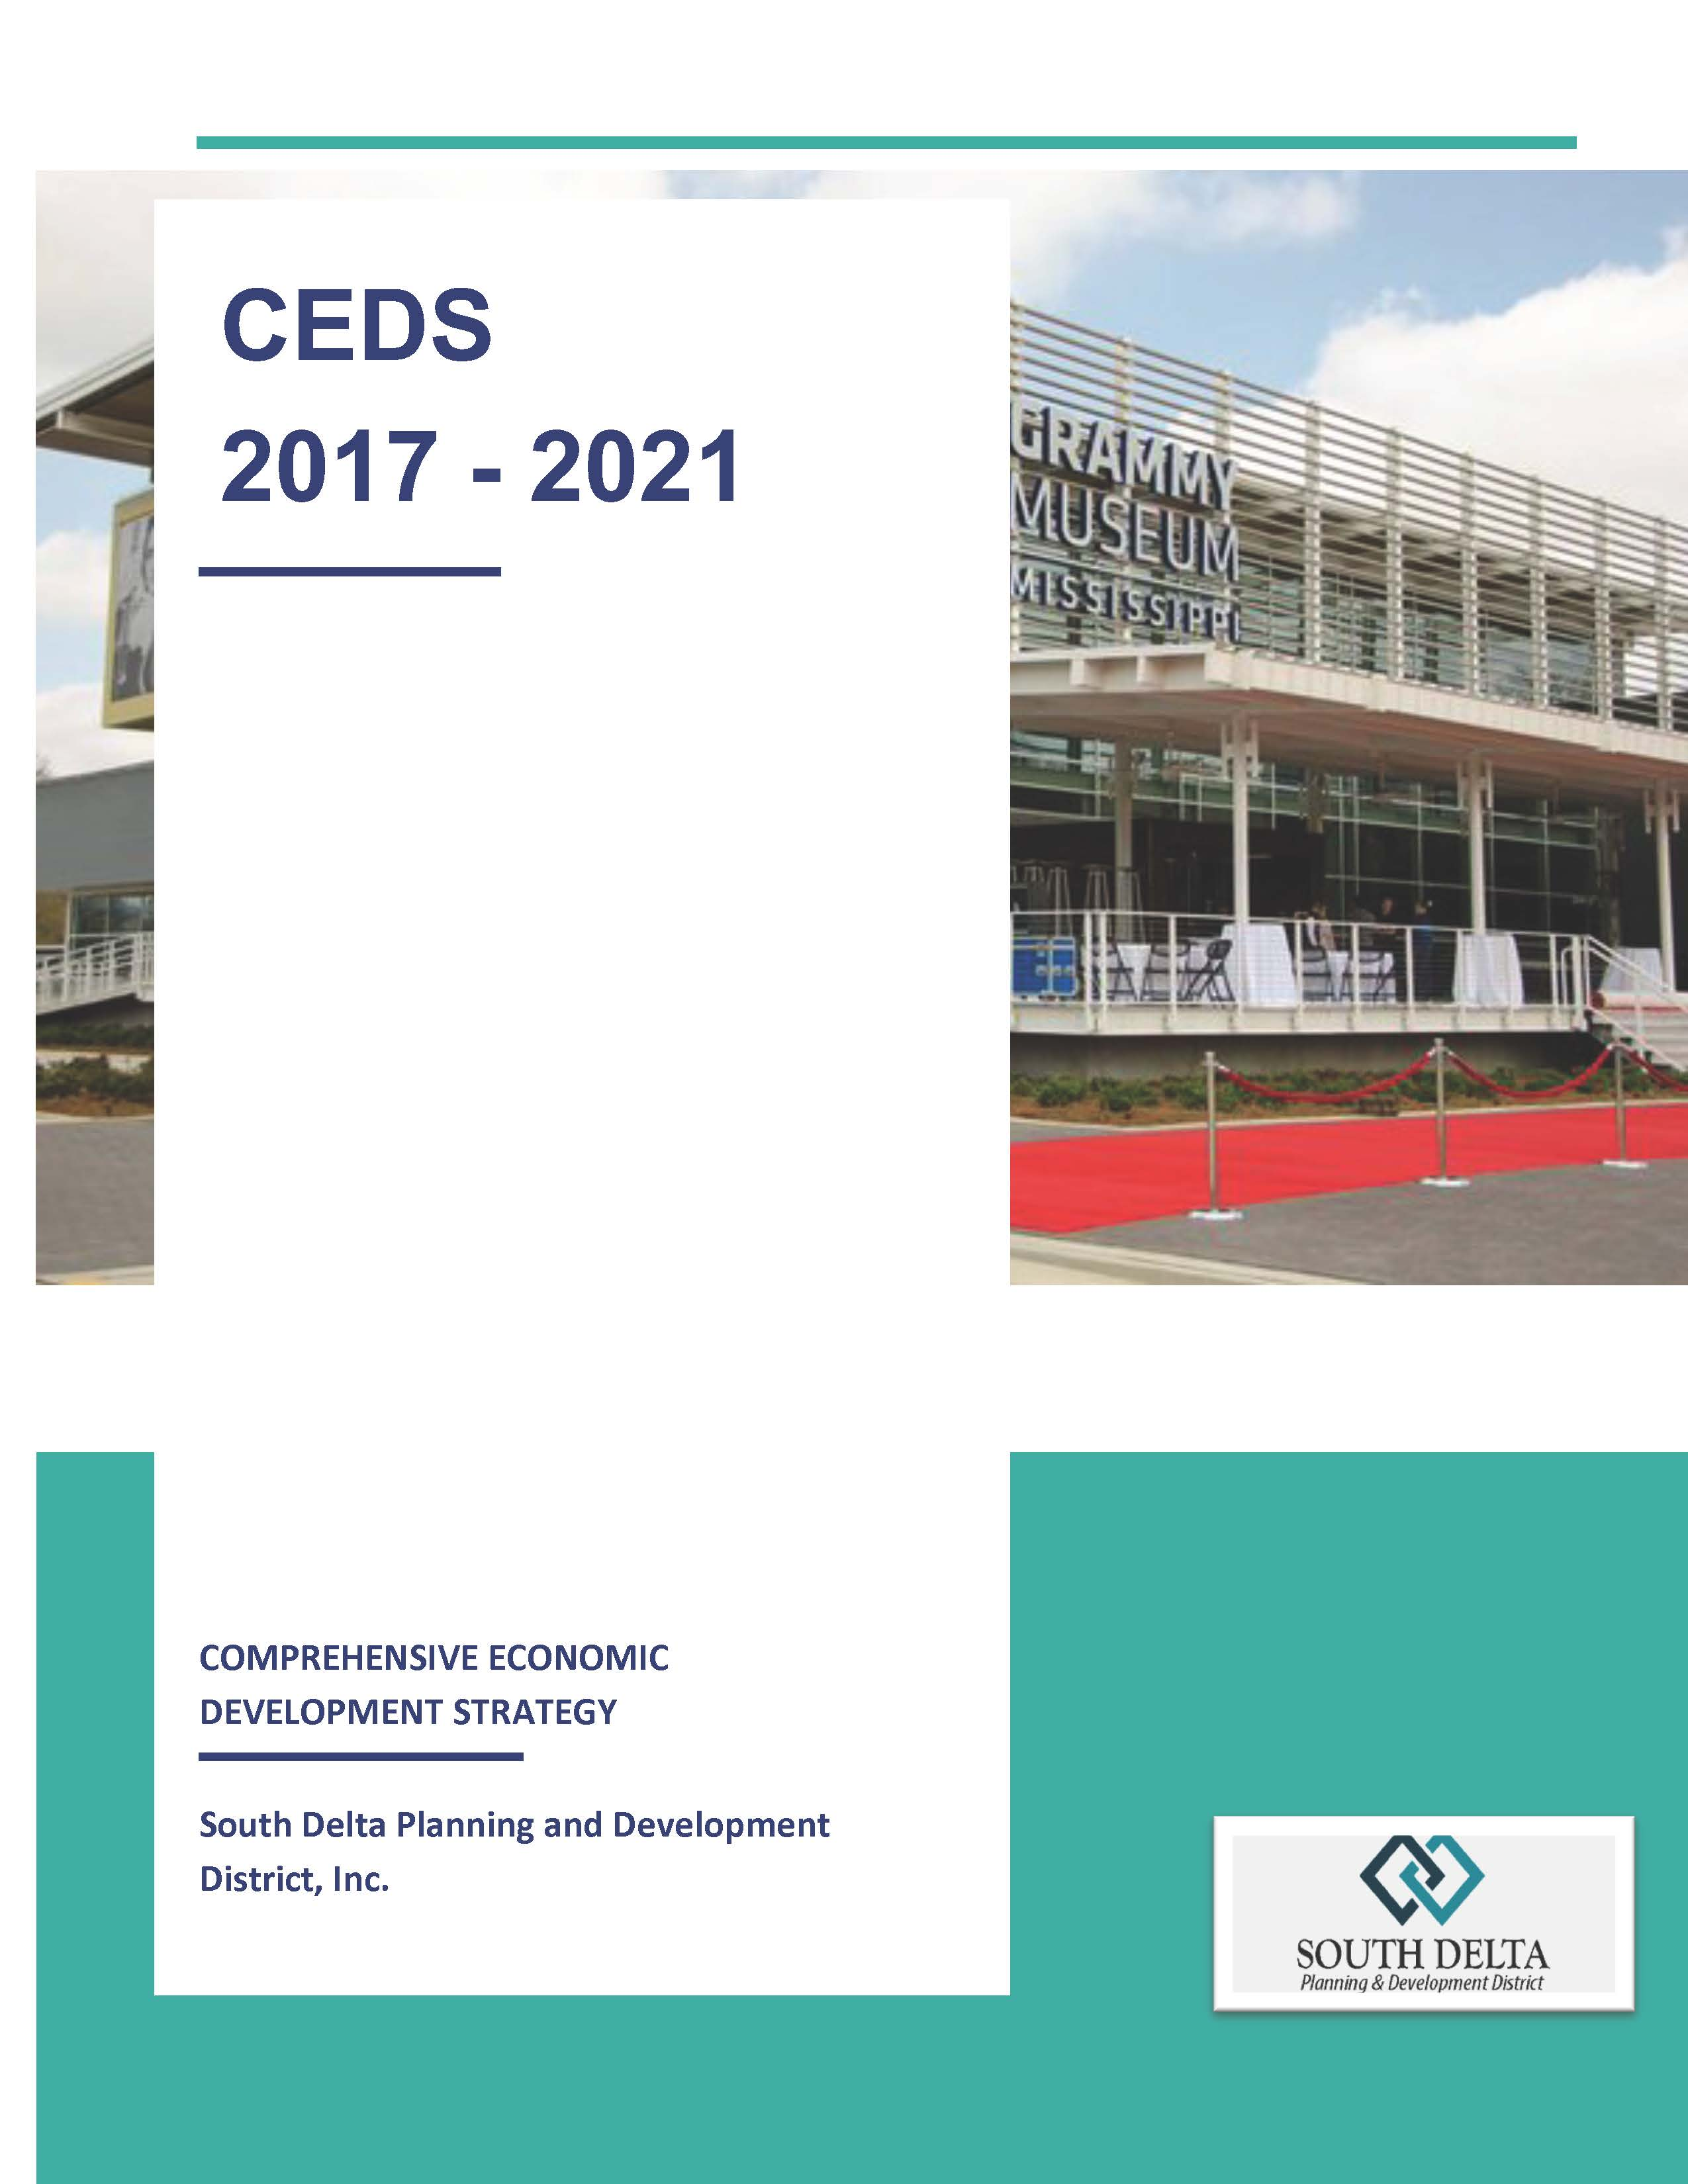 CEDS-2018_Page_01